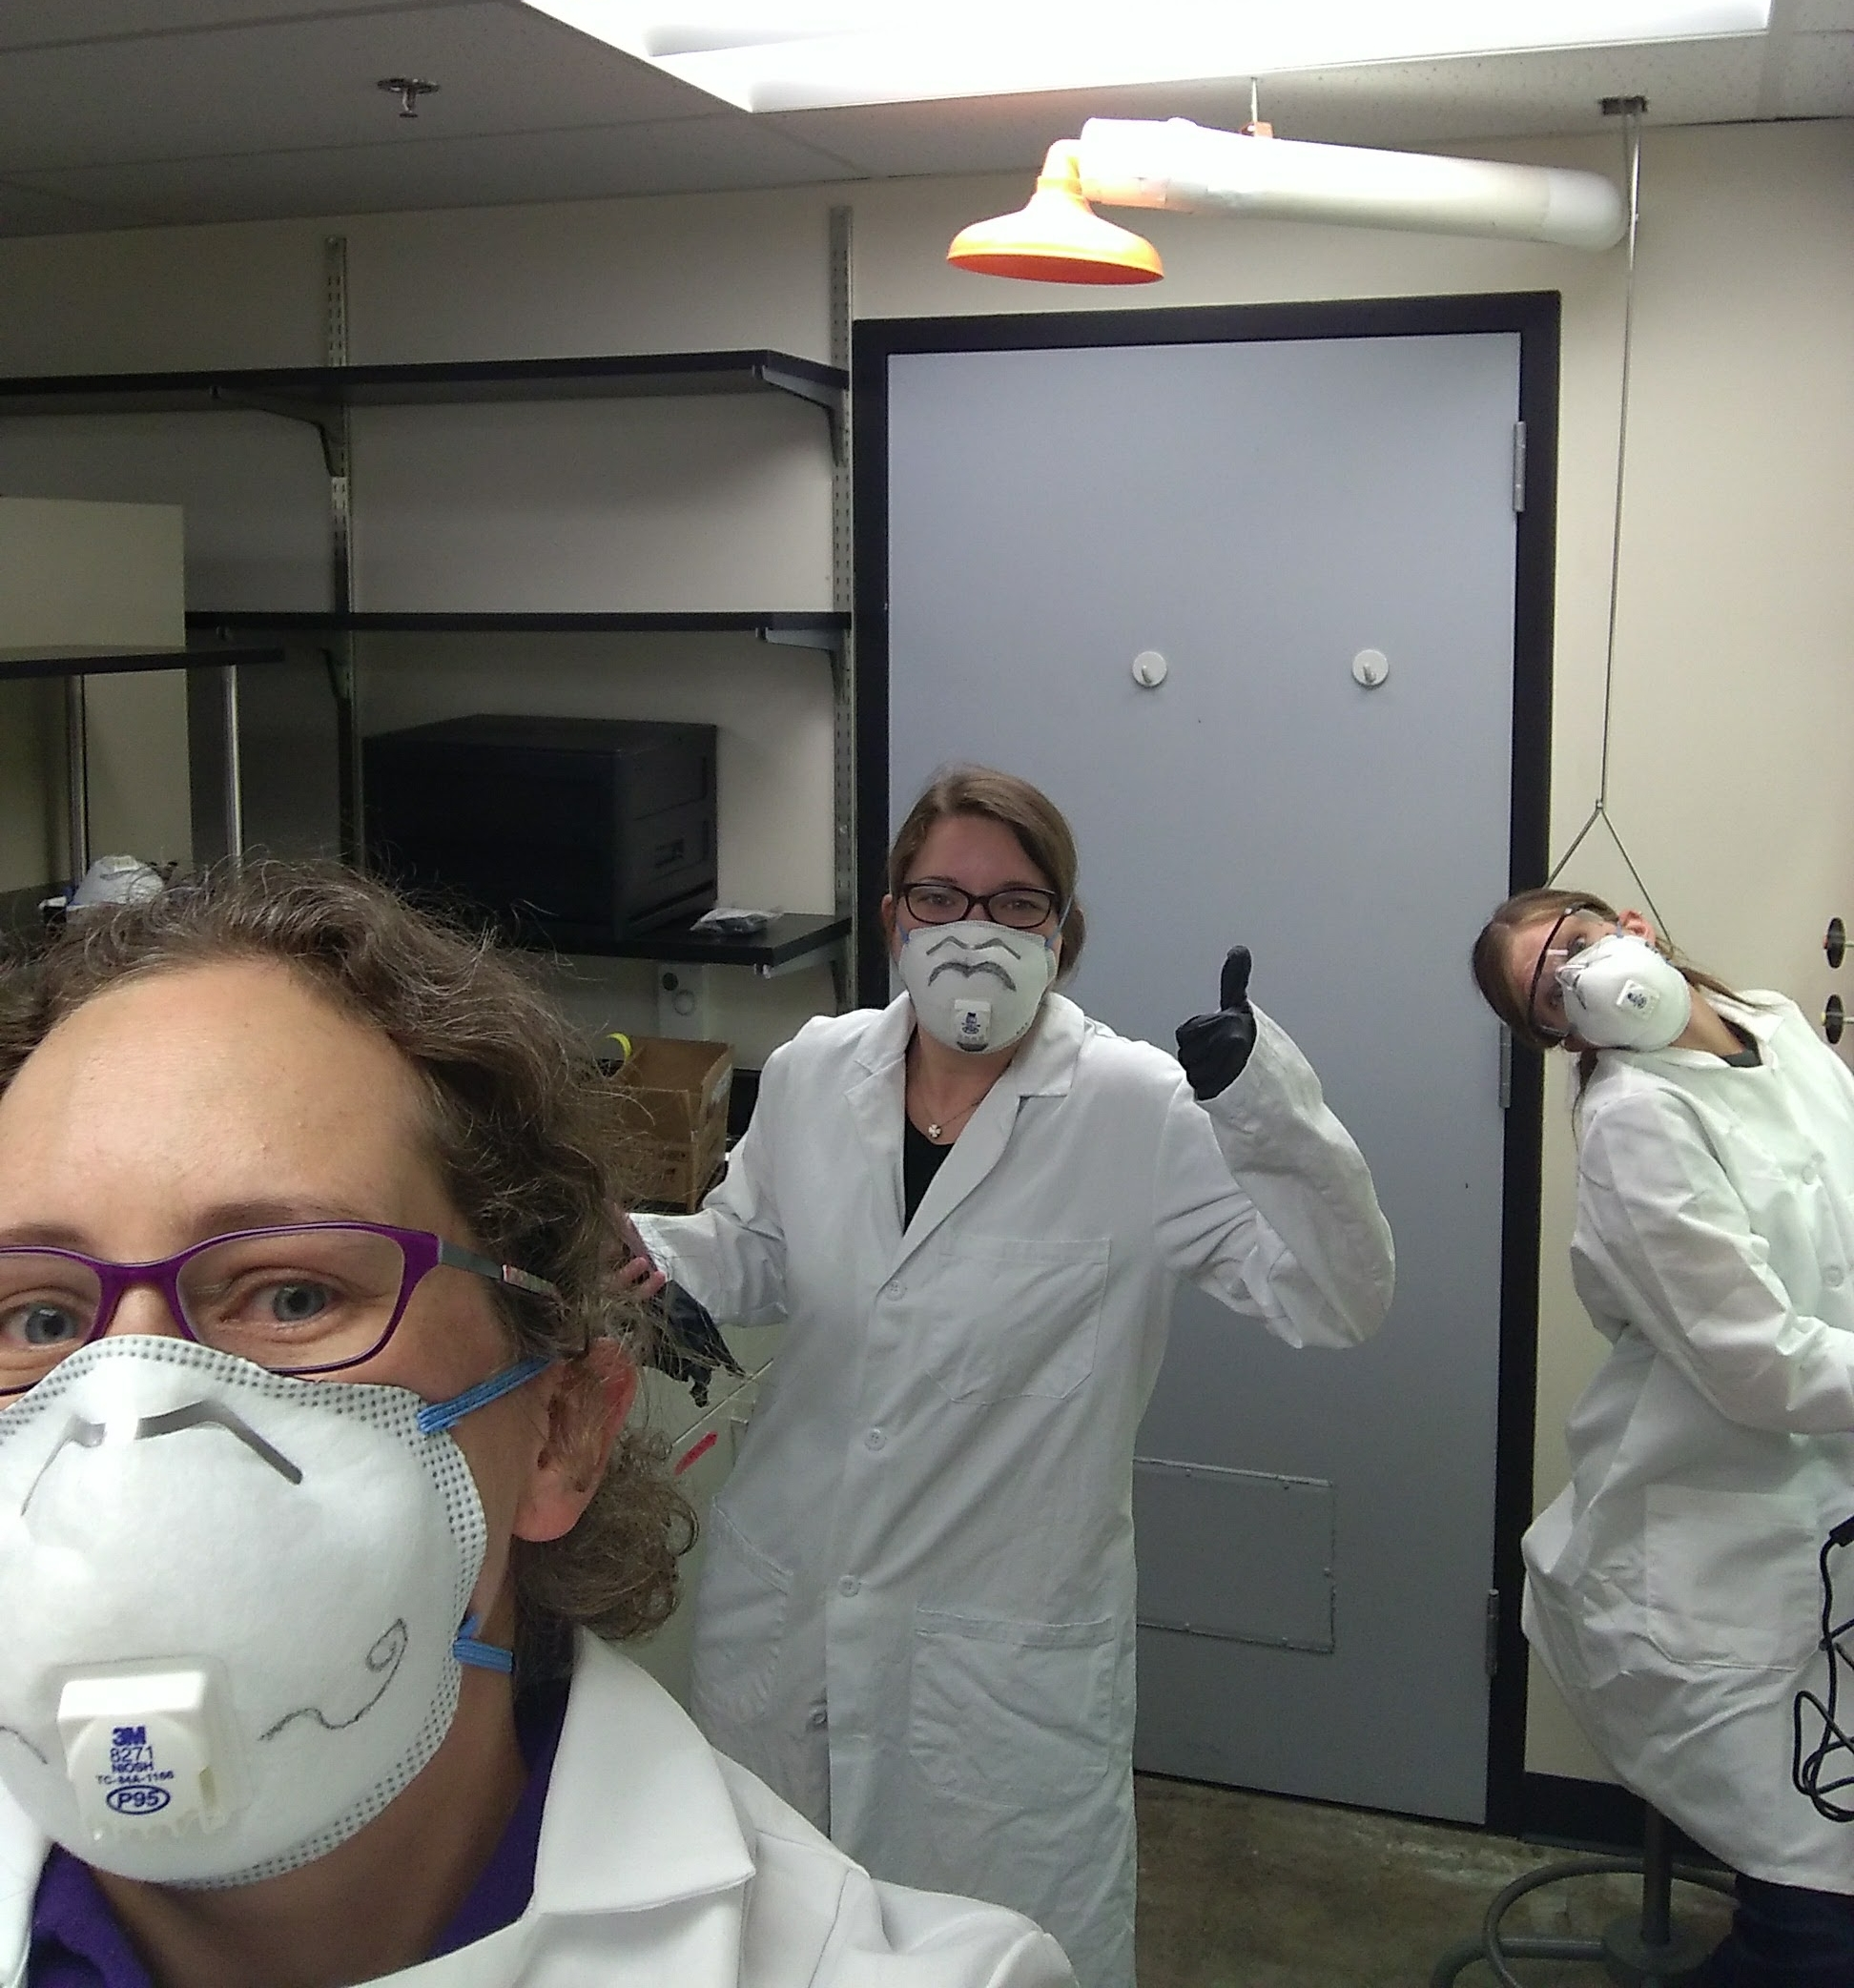 The lab crew during our decomposed human rib dissections. We always wear proper personal protective equipment, including glasses, masks, gloves, and lab coats.